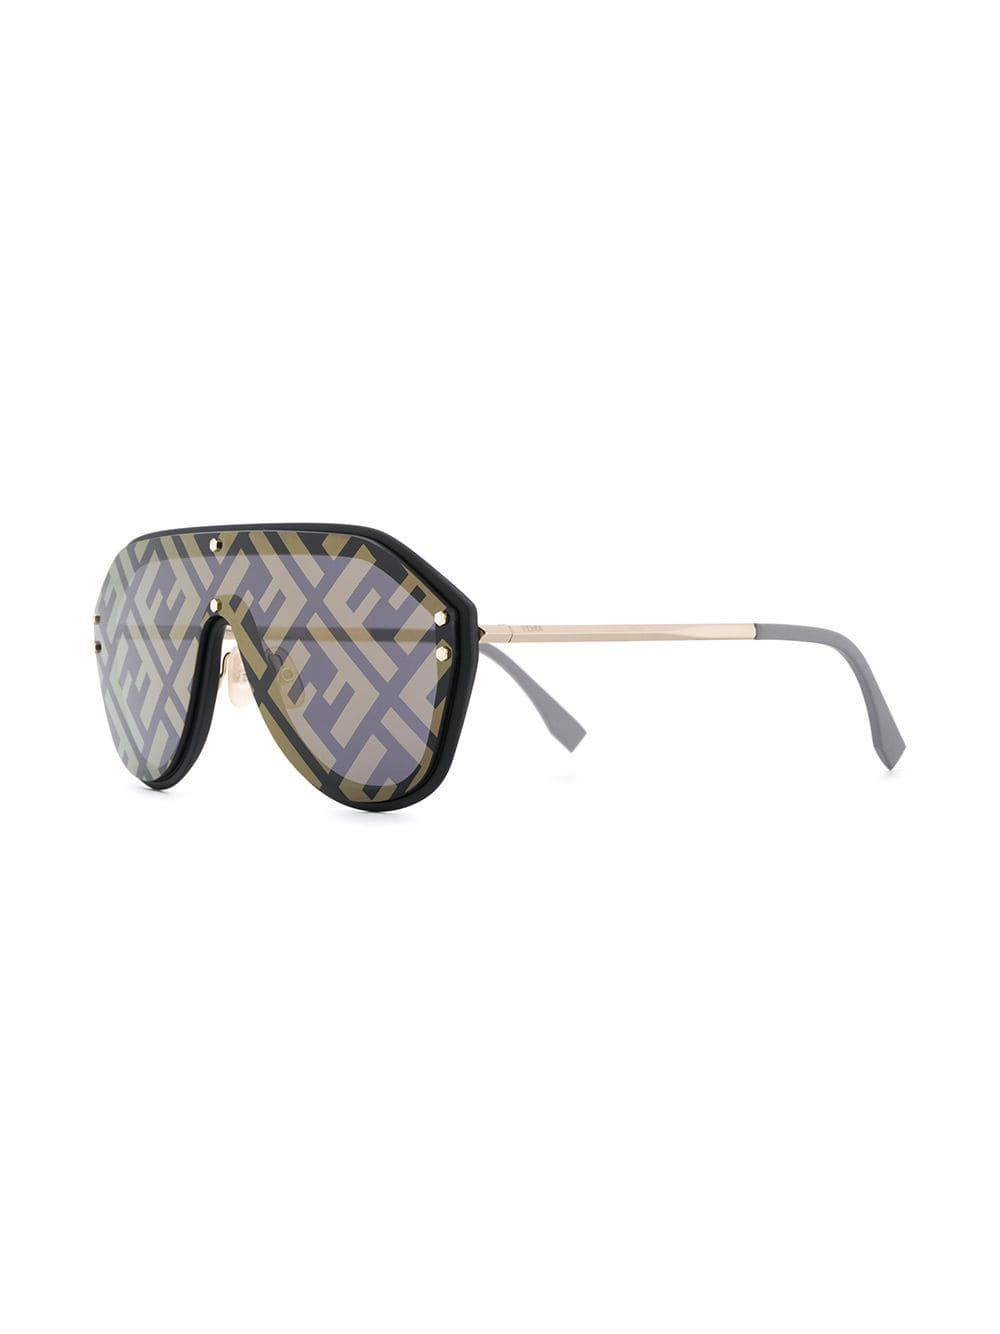 39469fcd077c4 Fendi Eyeline Aviator Sunglasses in Black - Lyst